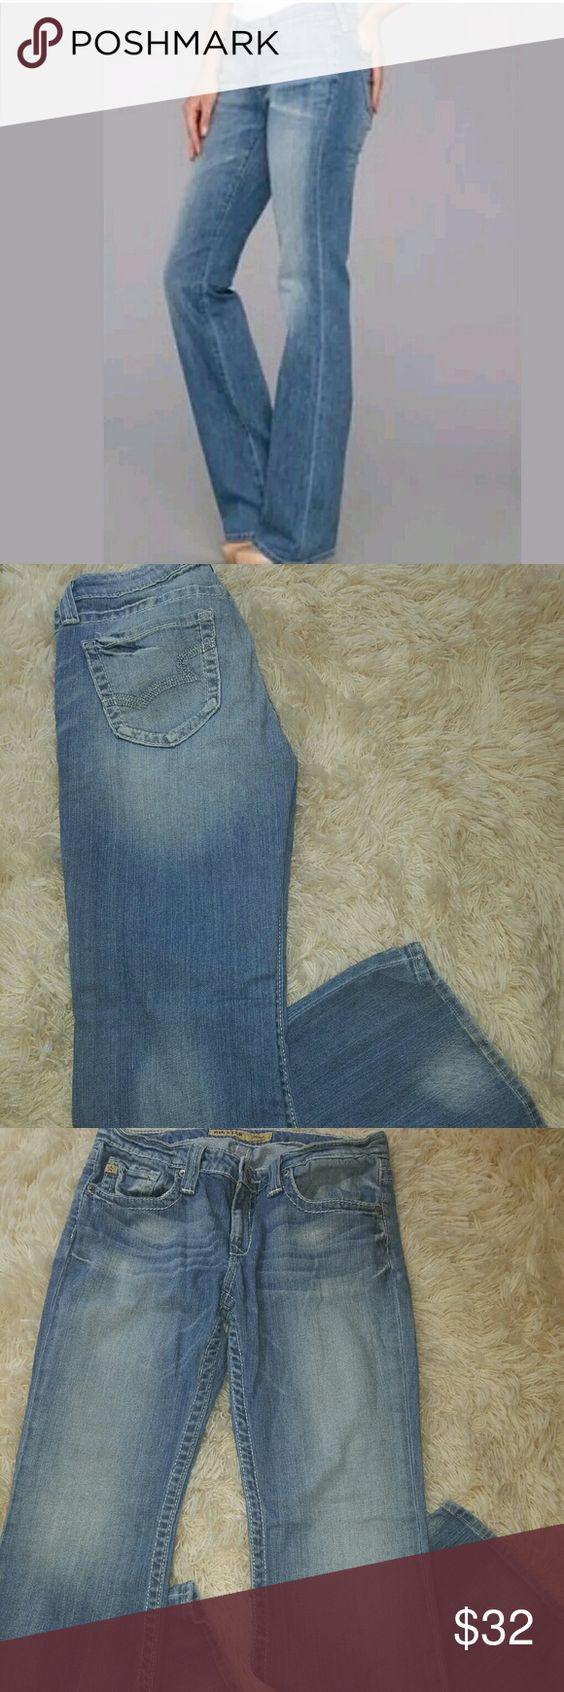 Womens Big Star Remy Lowrise Bootcut Blue Jeans Womens Big Star Remy Lowrise Bootcut Denim Blue Jeans 30R  31 inch waist.  8.25 inch waist.  38 inch waist.  30 inch inseam.   98% Cotton 2% stretch.    LB Big Star Jeans Boot Cut